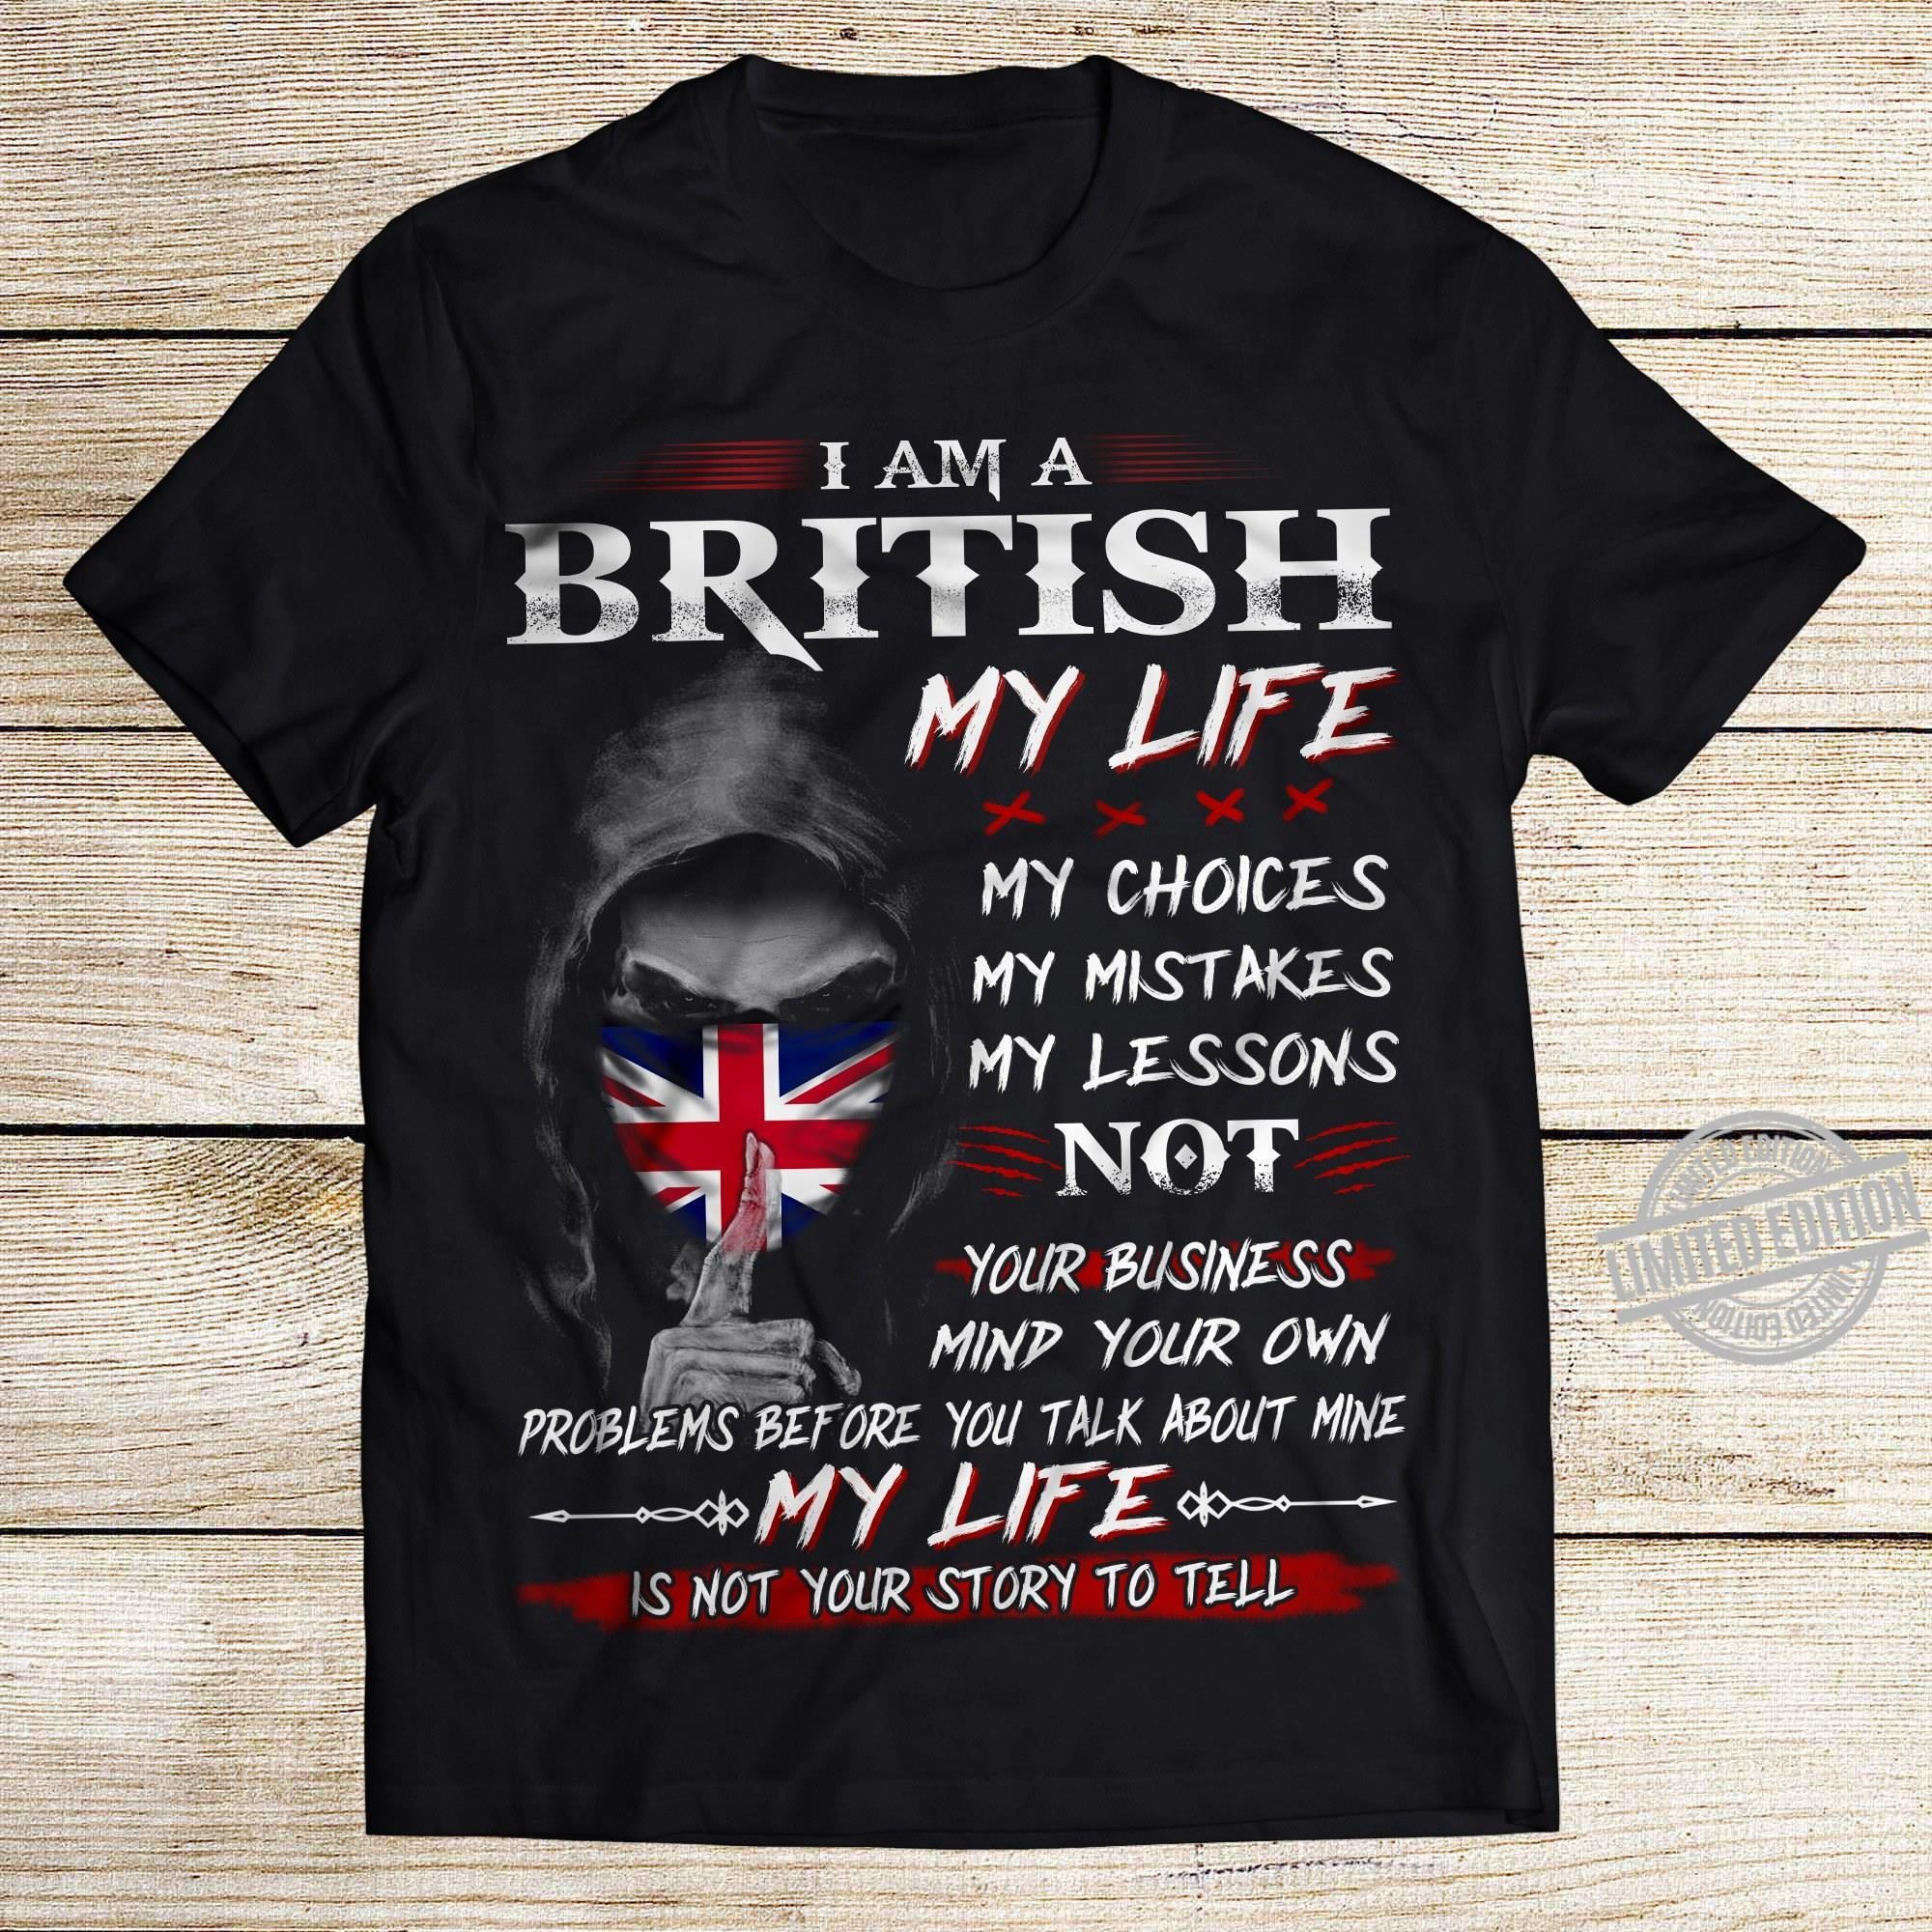 I am a British my life my choice my mistakes my lessons not your business mind your own my life shirt